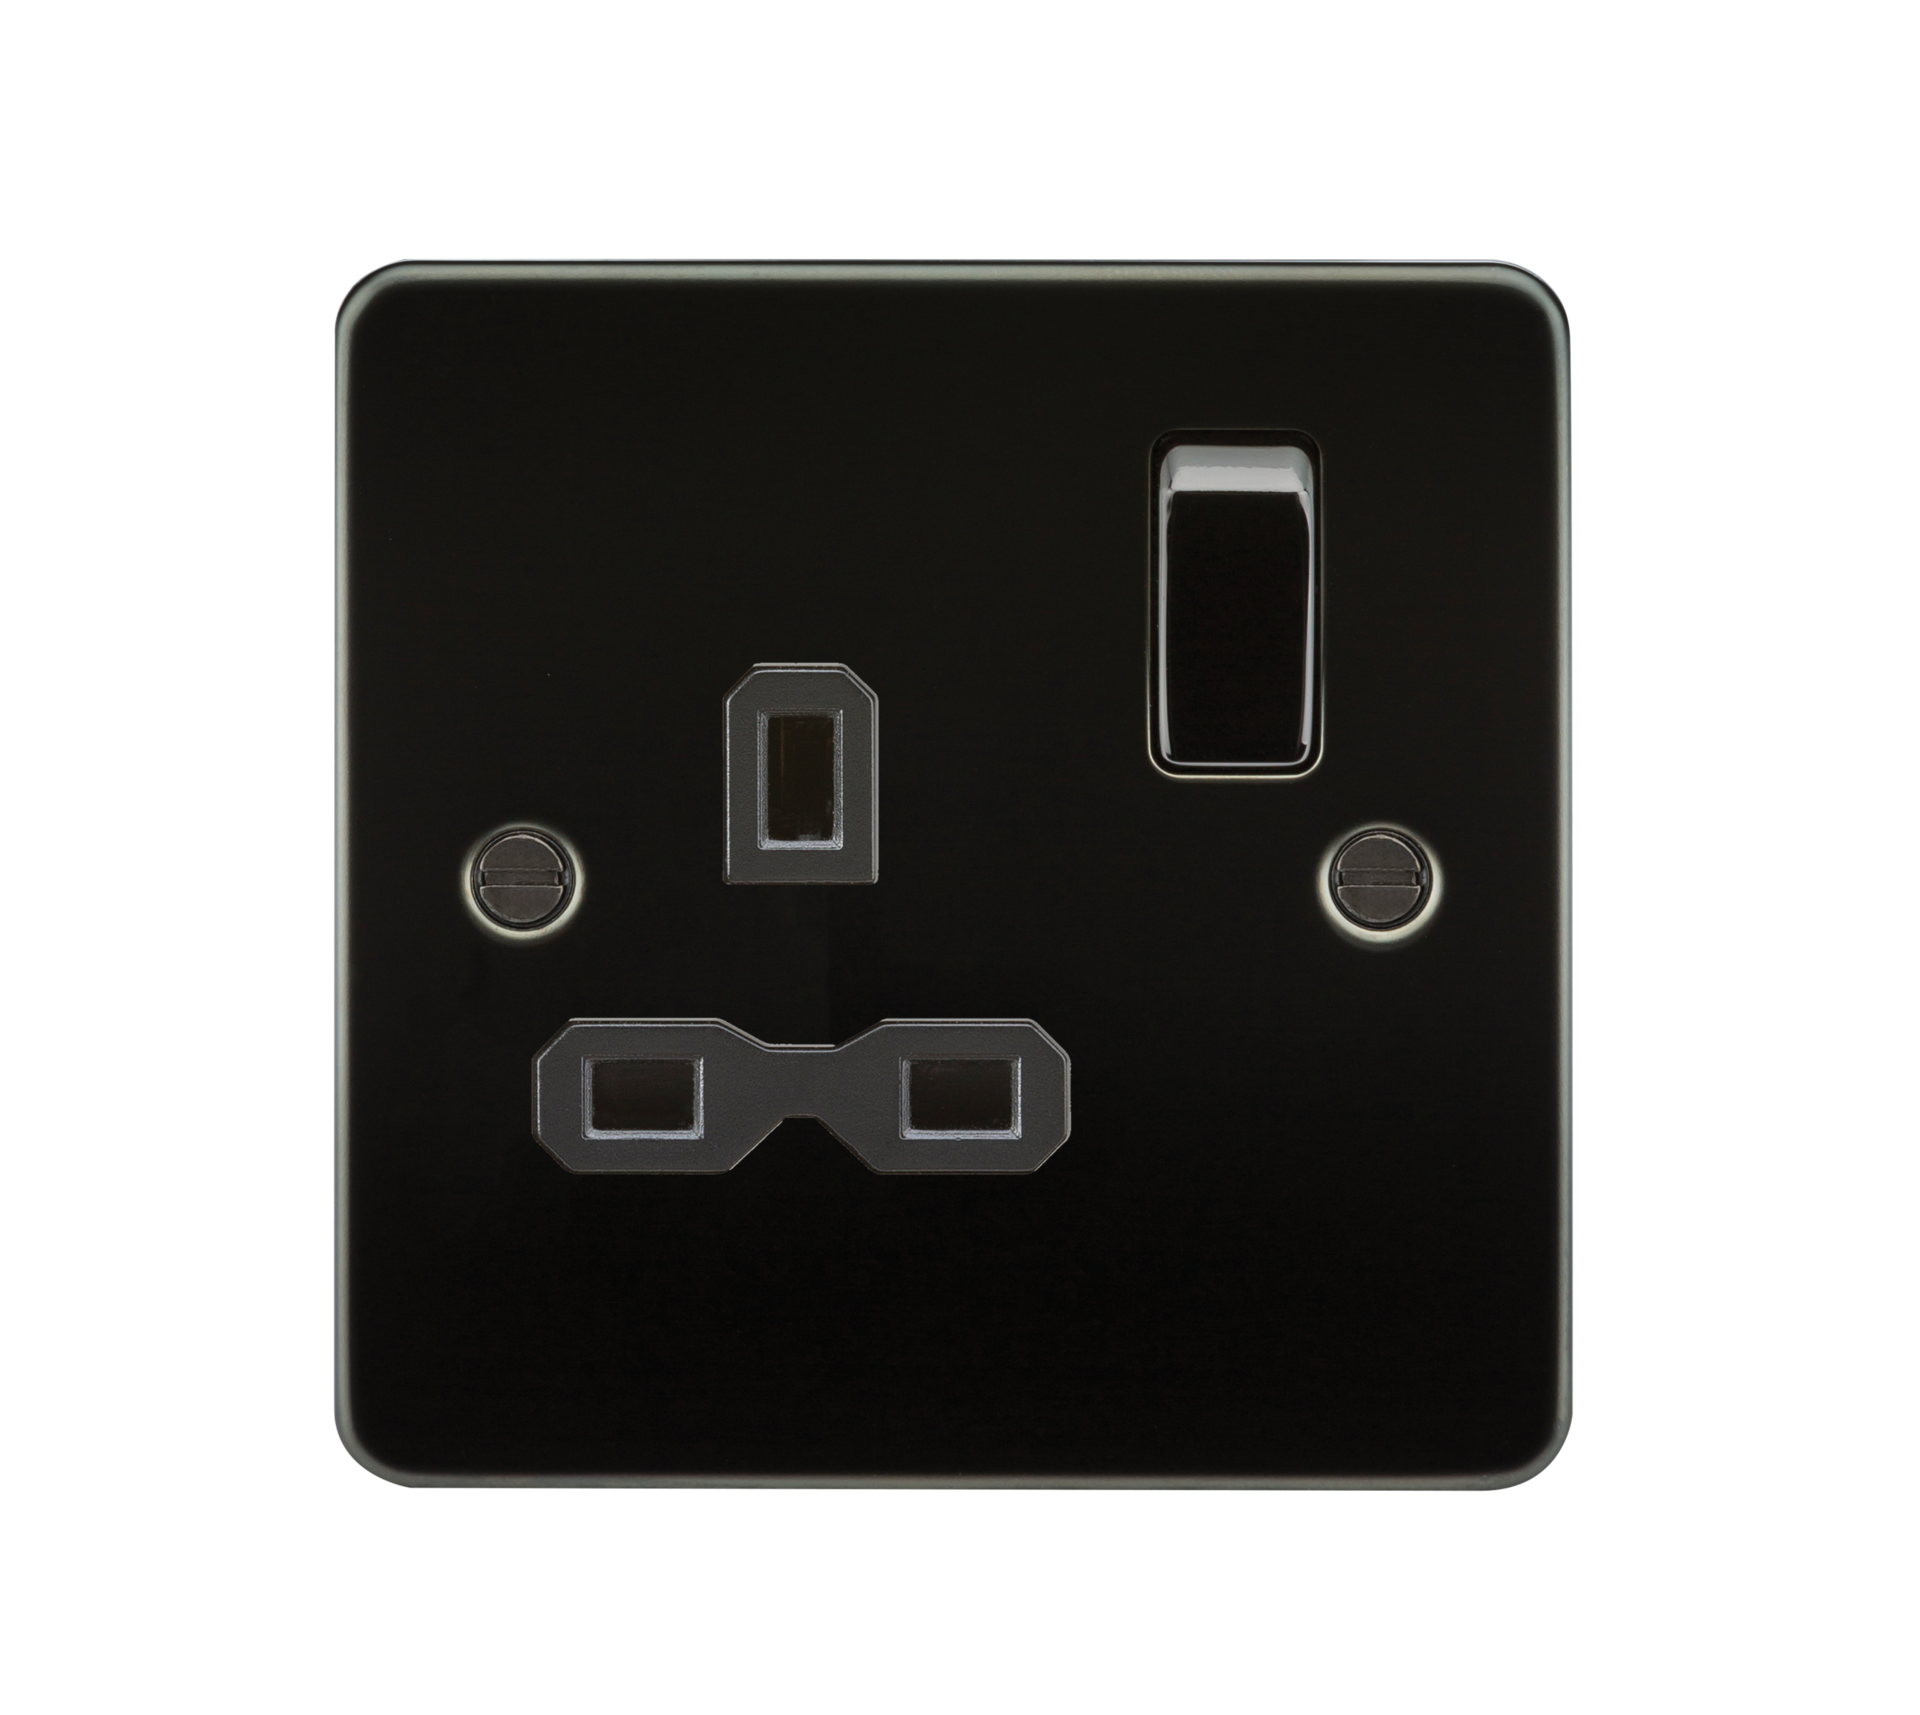 Flat plate 13A 1G DP switched socket - gunmetal with black insert